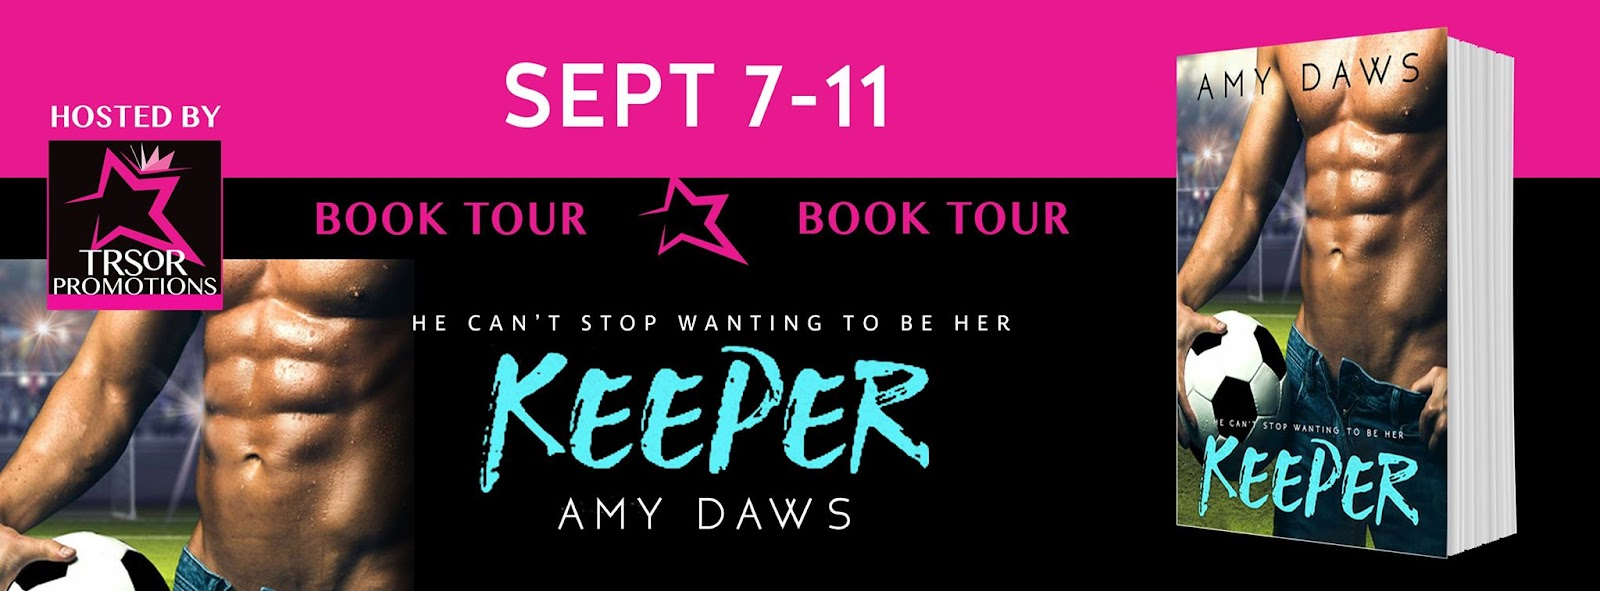 keeper book tour.jpg